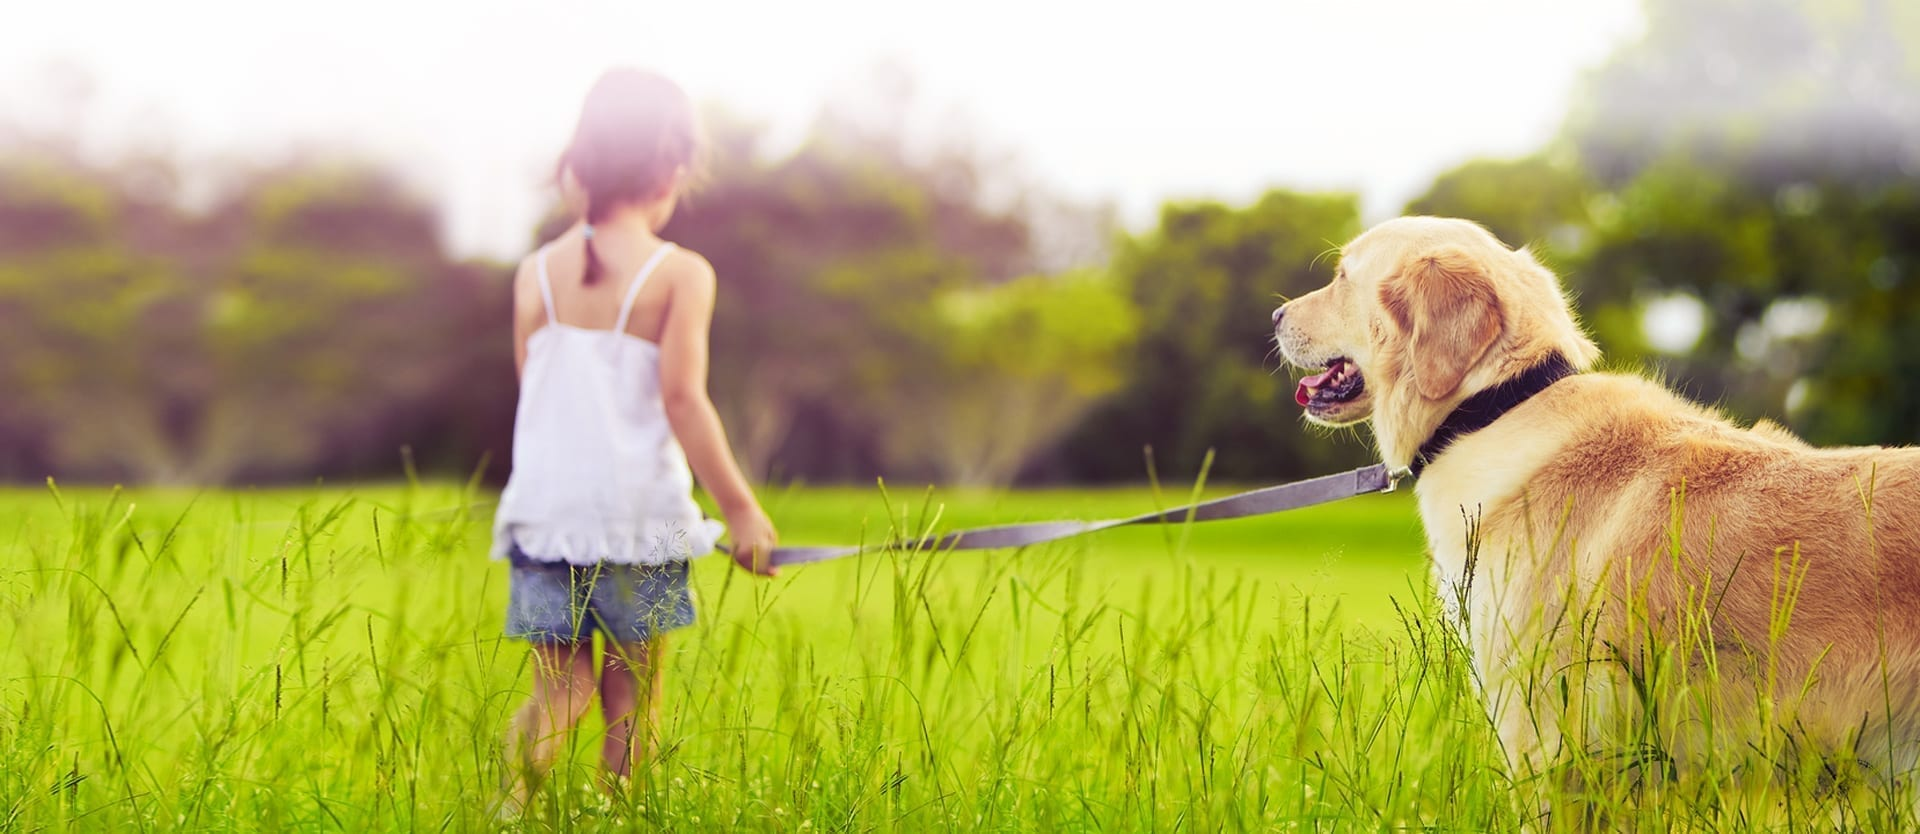 Girl and dog in communities